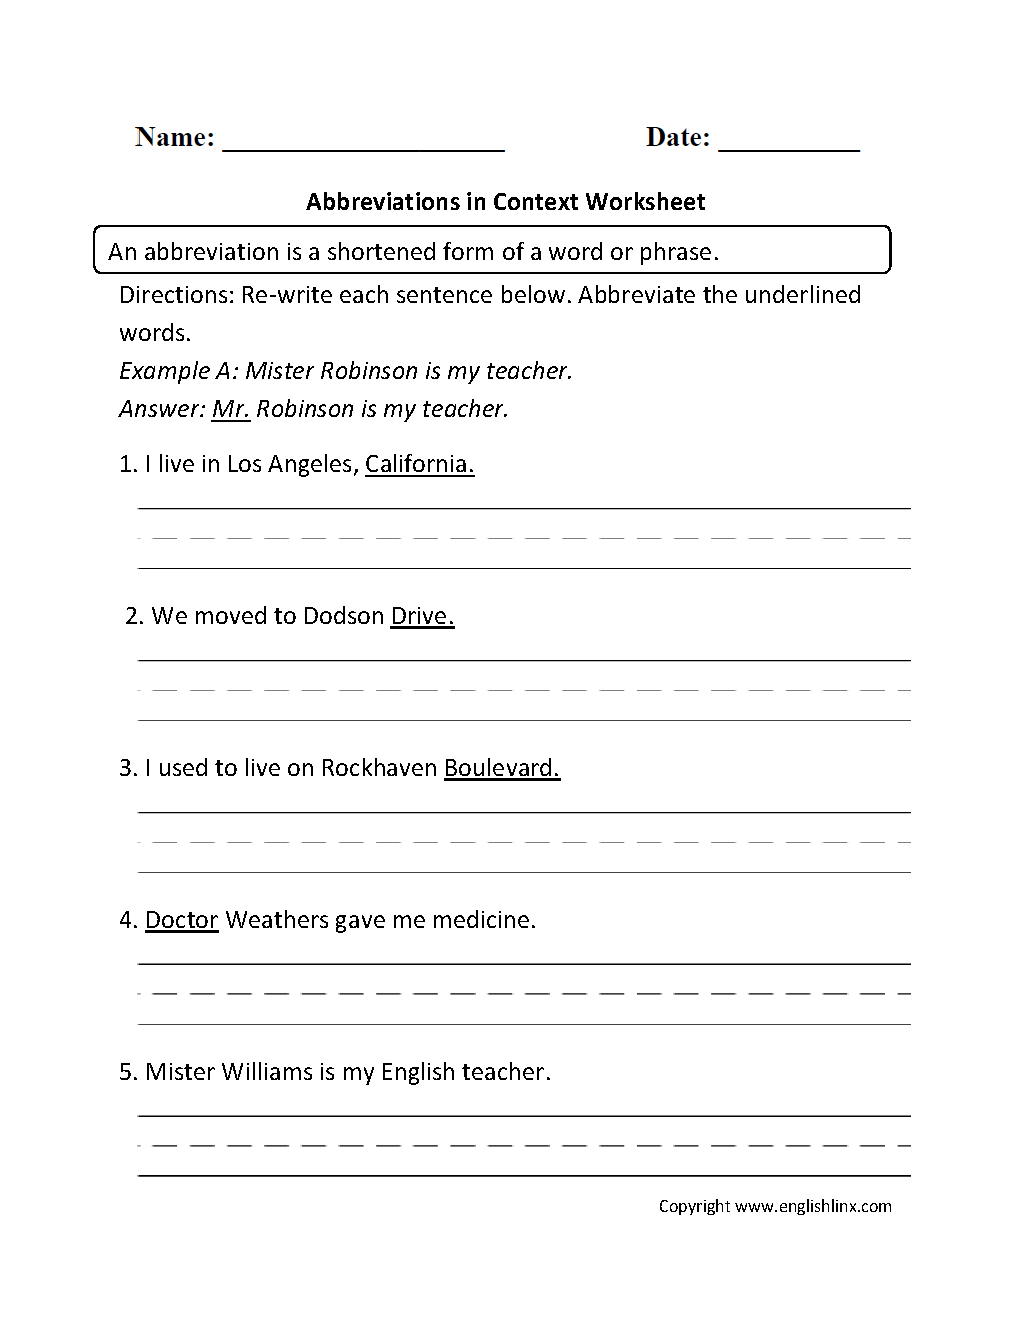 Englishlinx abbreviations worksheets grades k 5 abbreviations worksheets biocorpaavc Choice Image